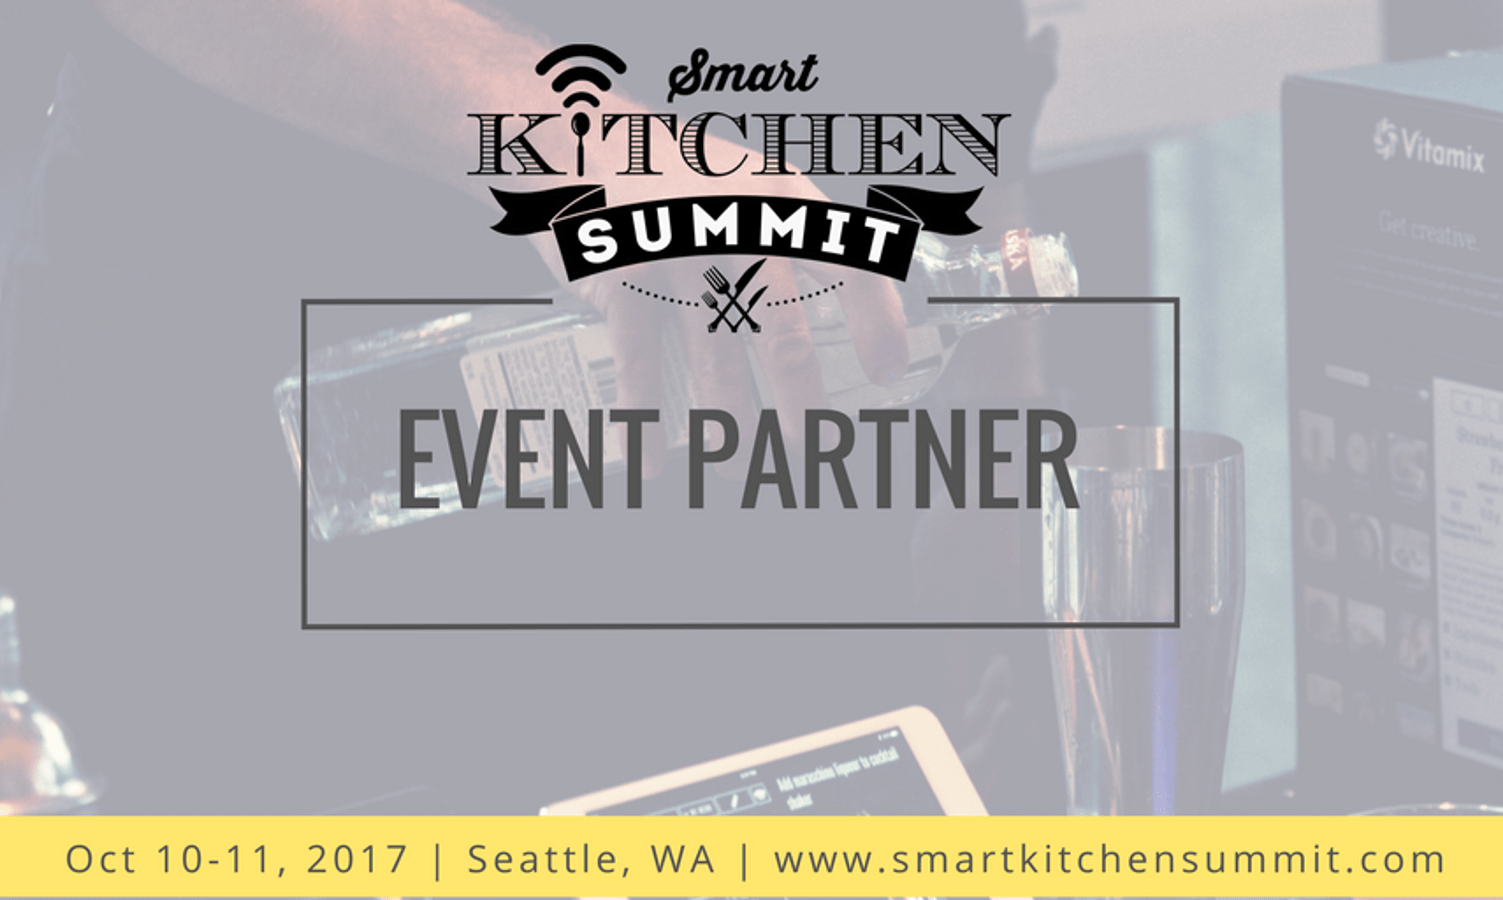 The third annual Smart Kitchen Summit (SKS) will be held on October 10 and 11, 2017, at Benaroya Hall in Seattle, Washington.